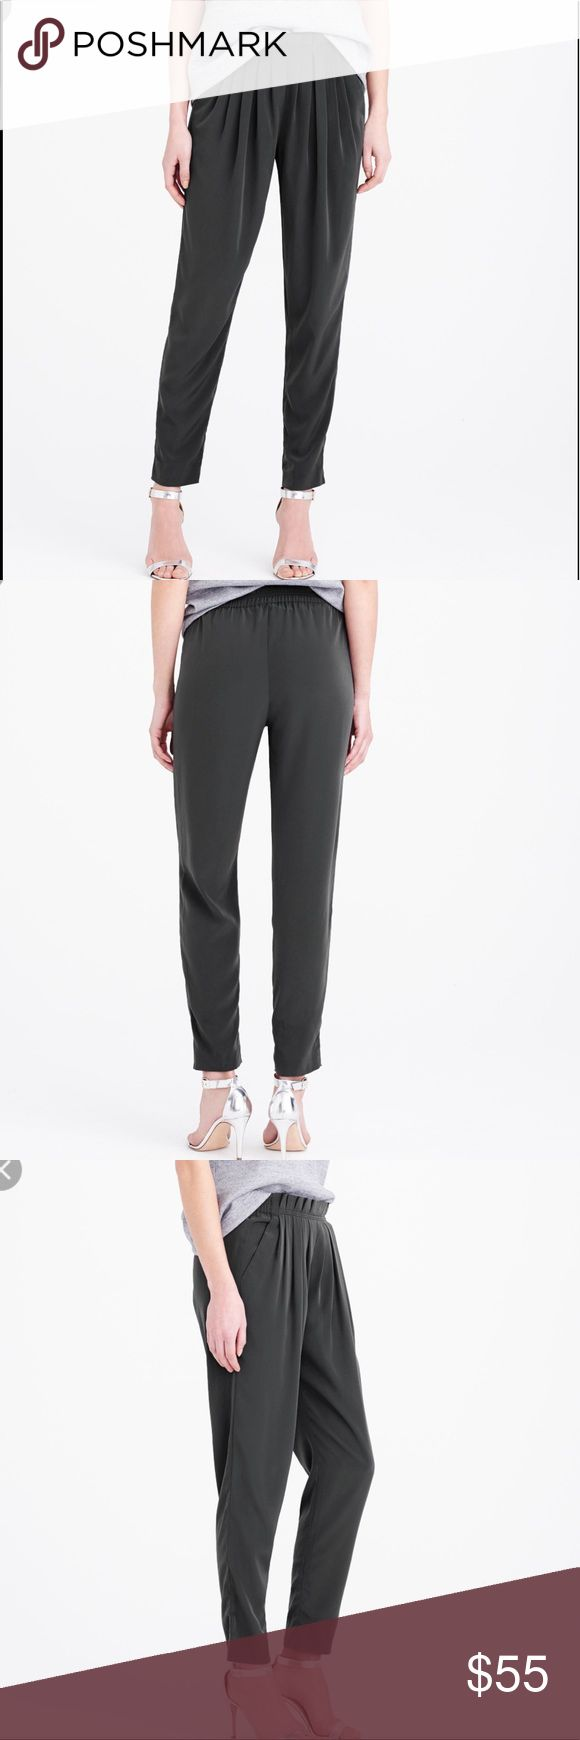 J Crew Pull On Pleated Pants Brand new. Gray color J. Crew Pants Trousers